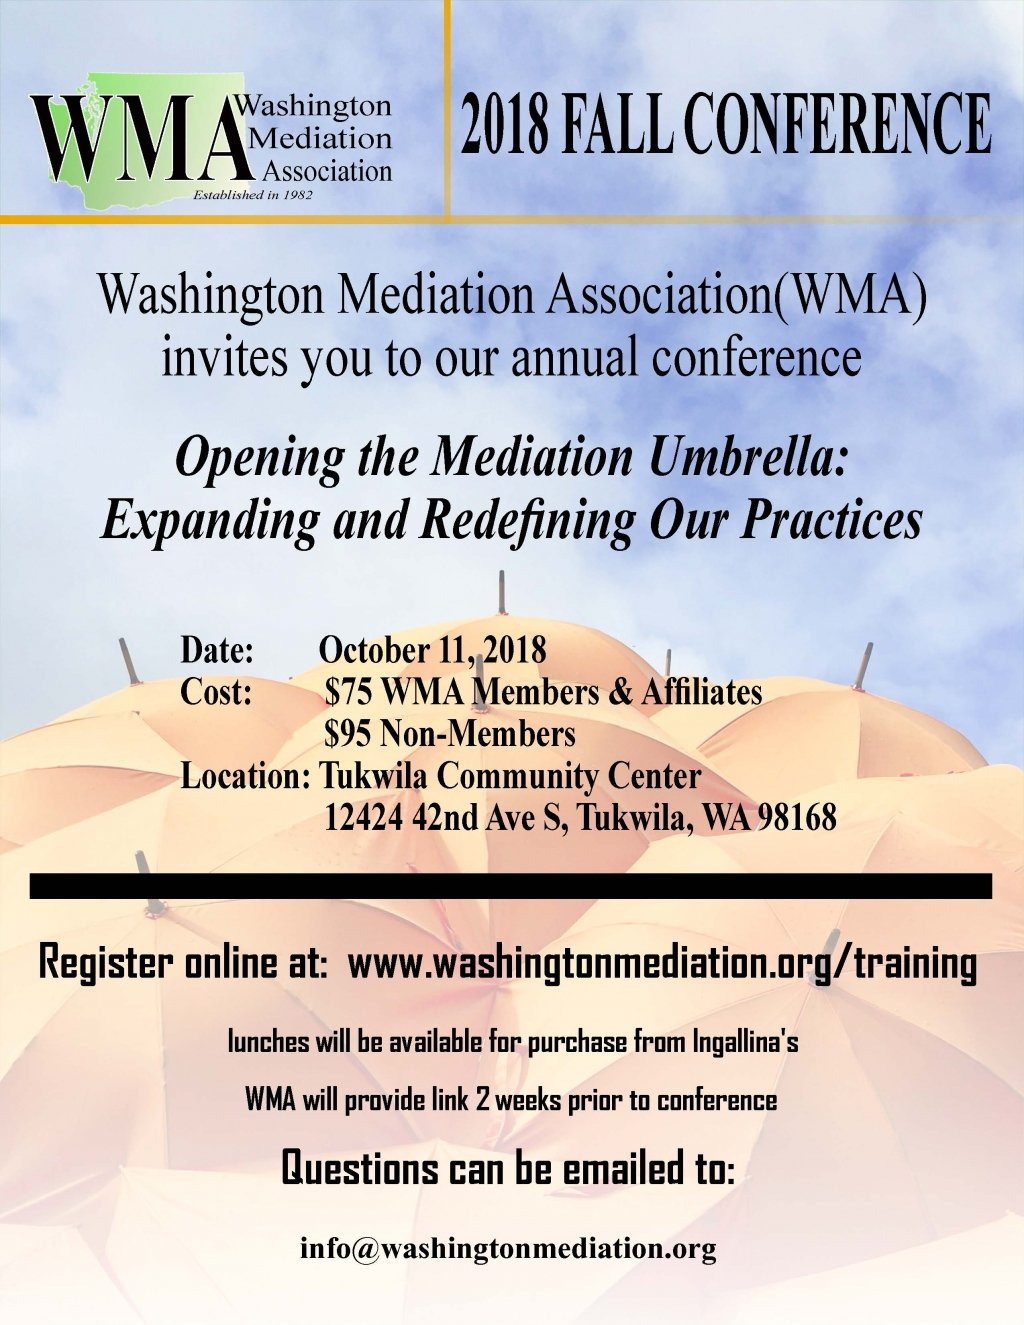 WMA's 2018 Conference flyer